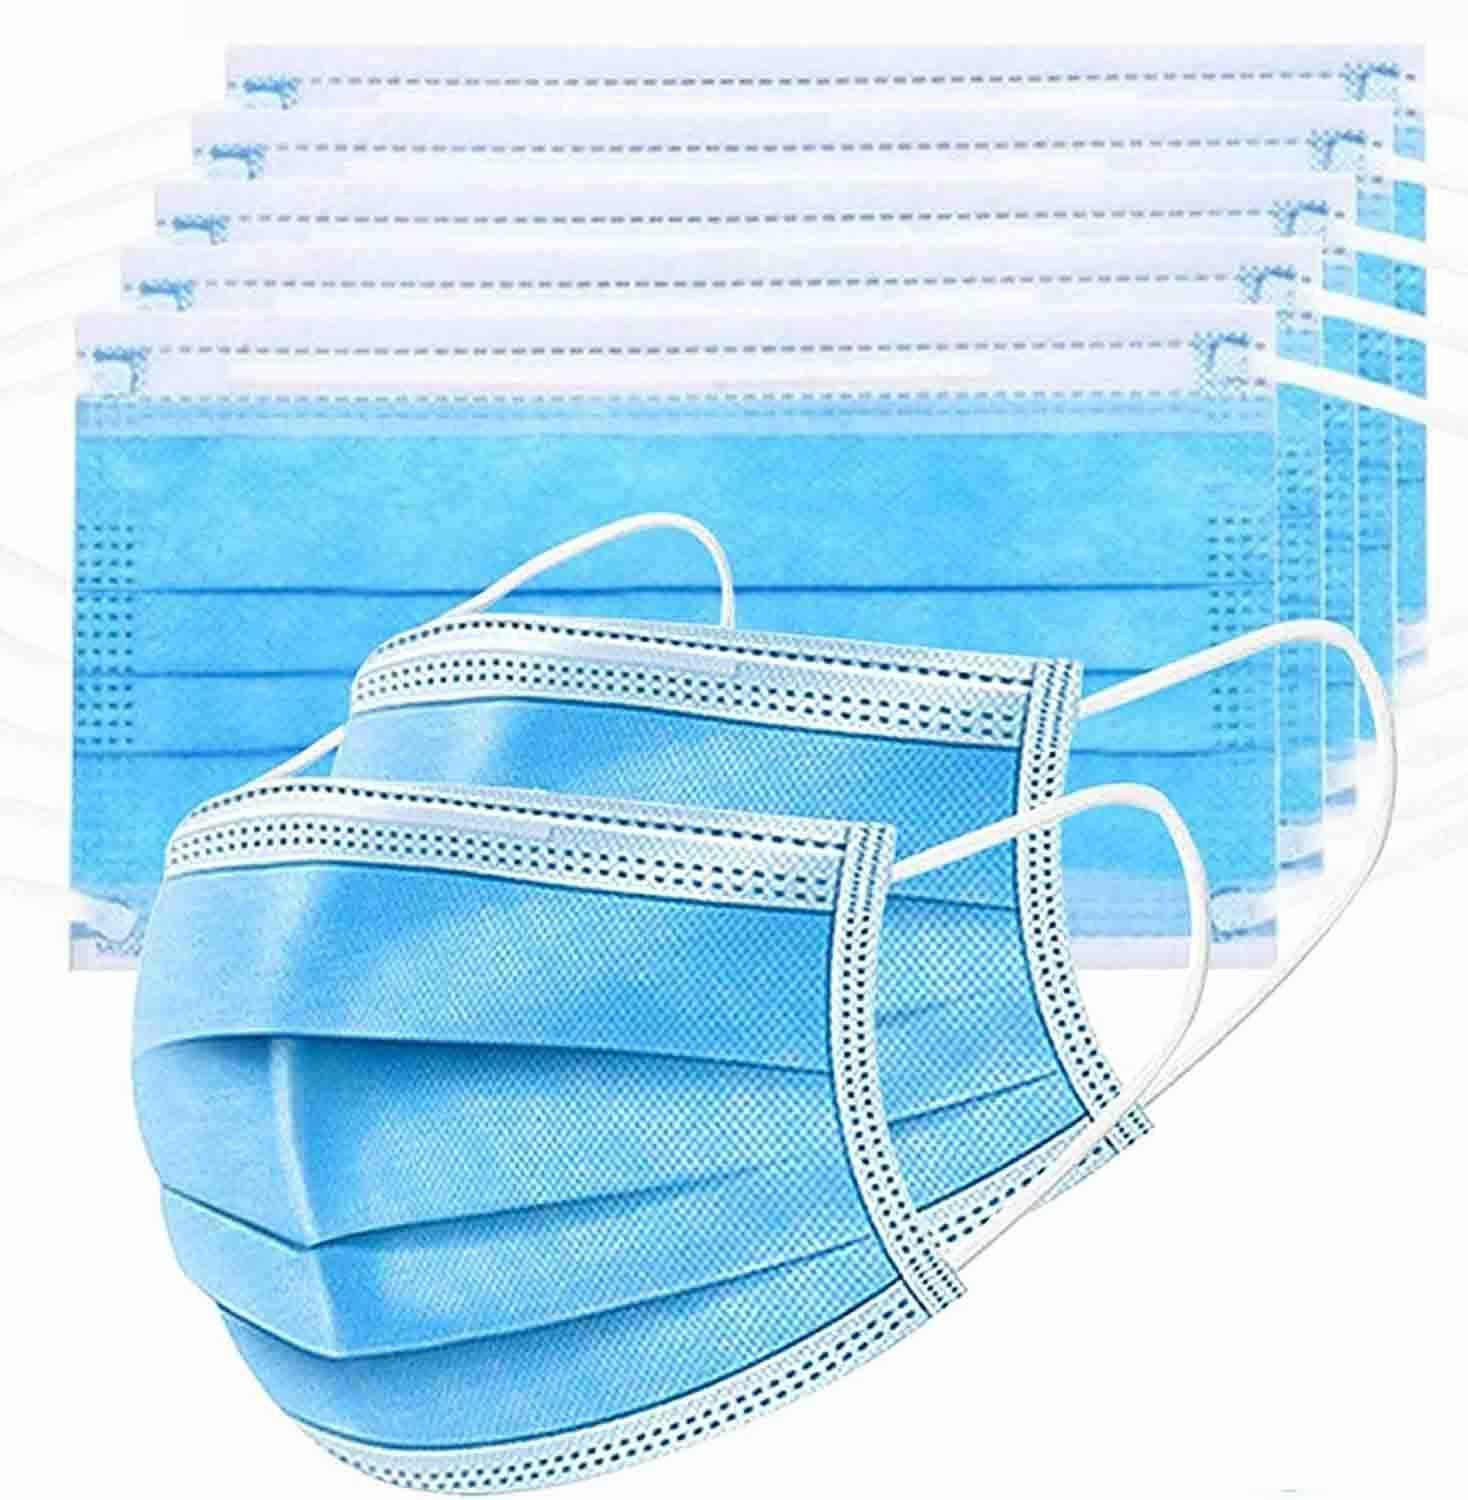 SUVAYU 3 Ply Surgical Face Mask (BIS Approved)